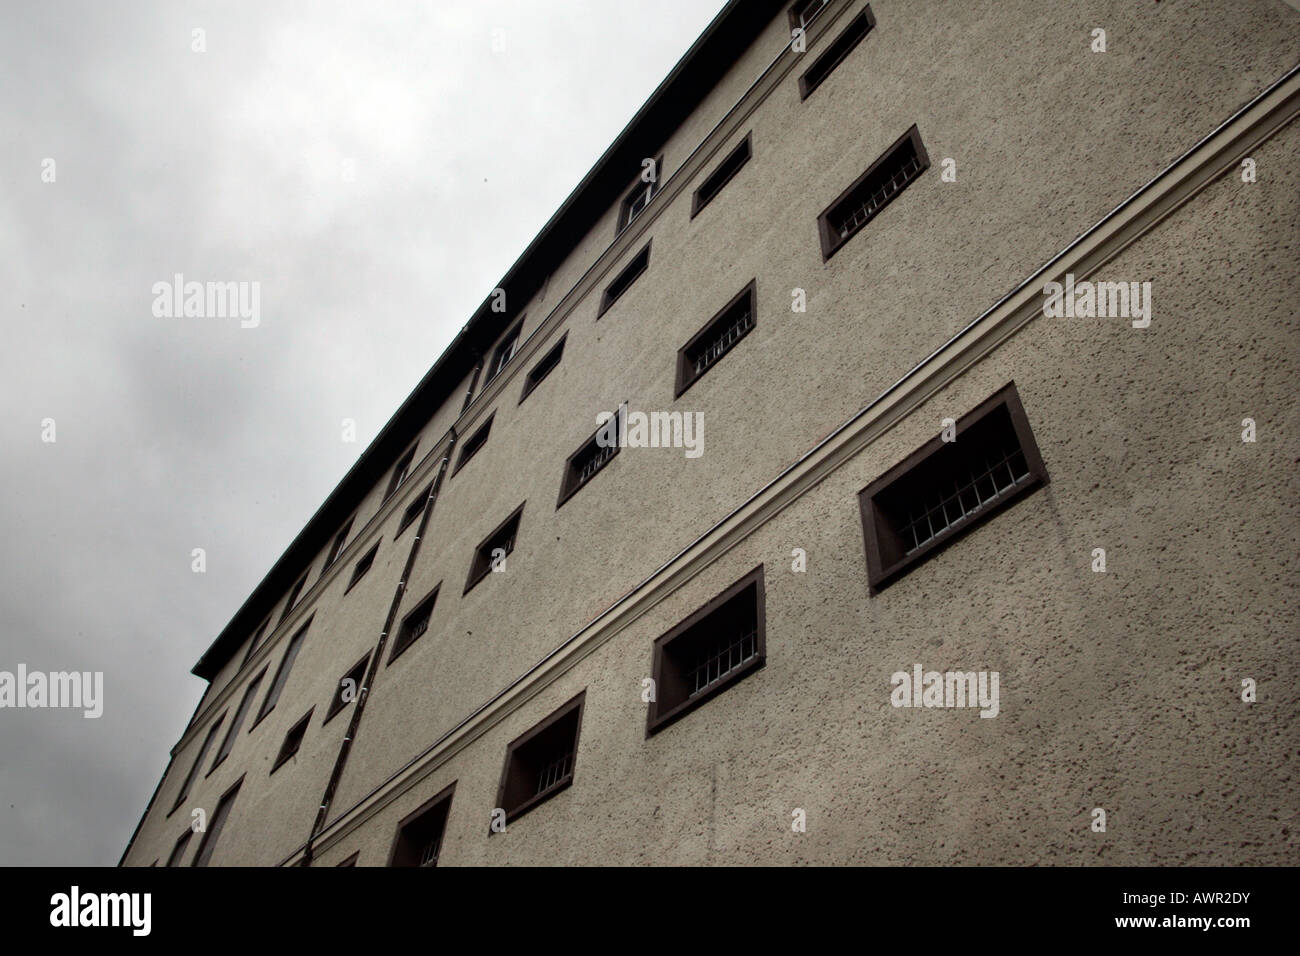 Prison building of the Ministry for public security (MfS, state security service) Dresden, Saxonia, Germany. - Stock Image